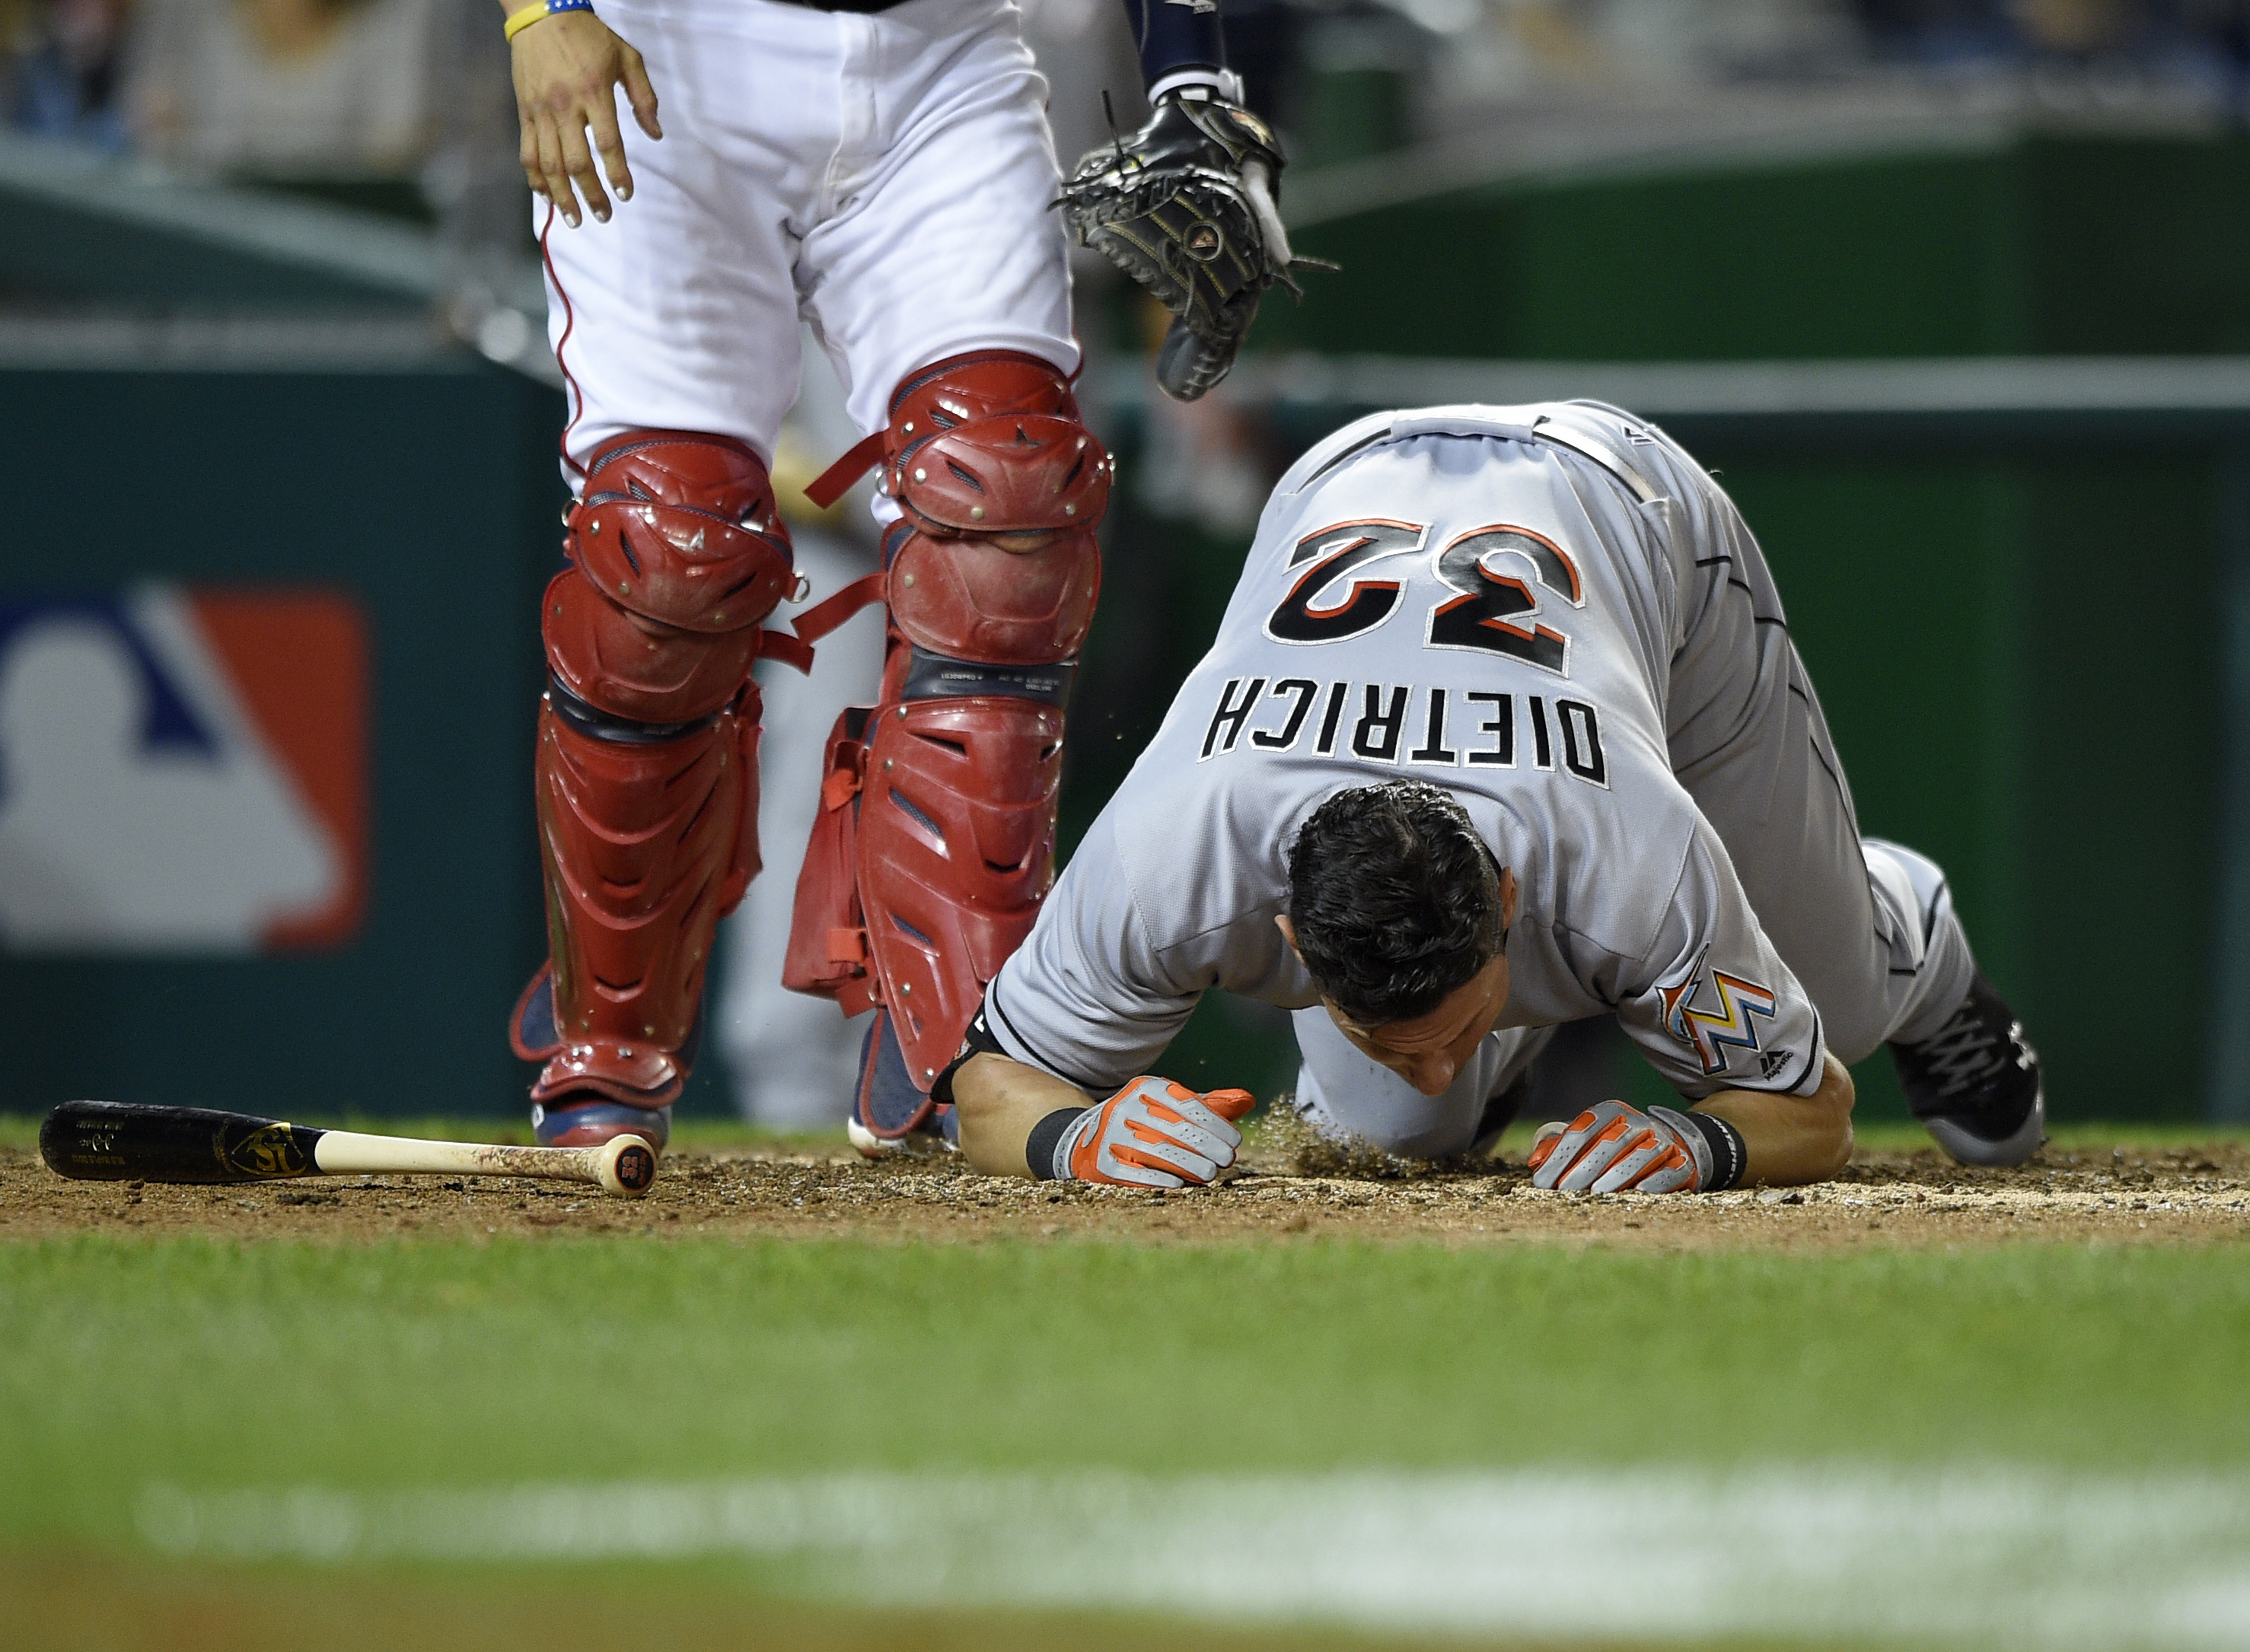 Marlins bullpen falters as Nationals rally for 5-3 win